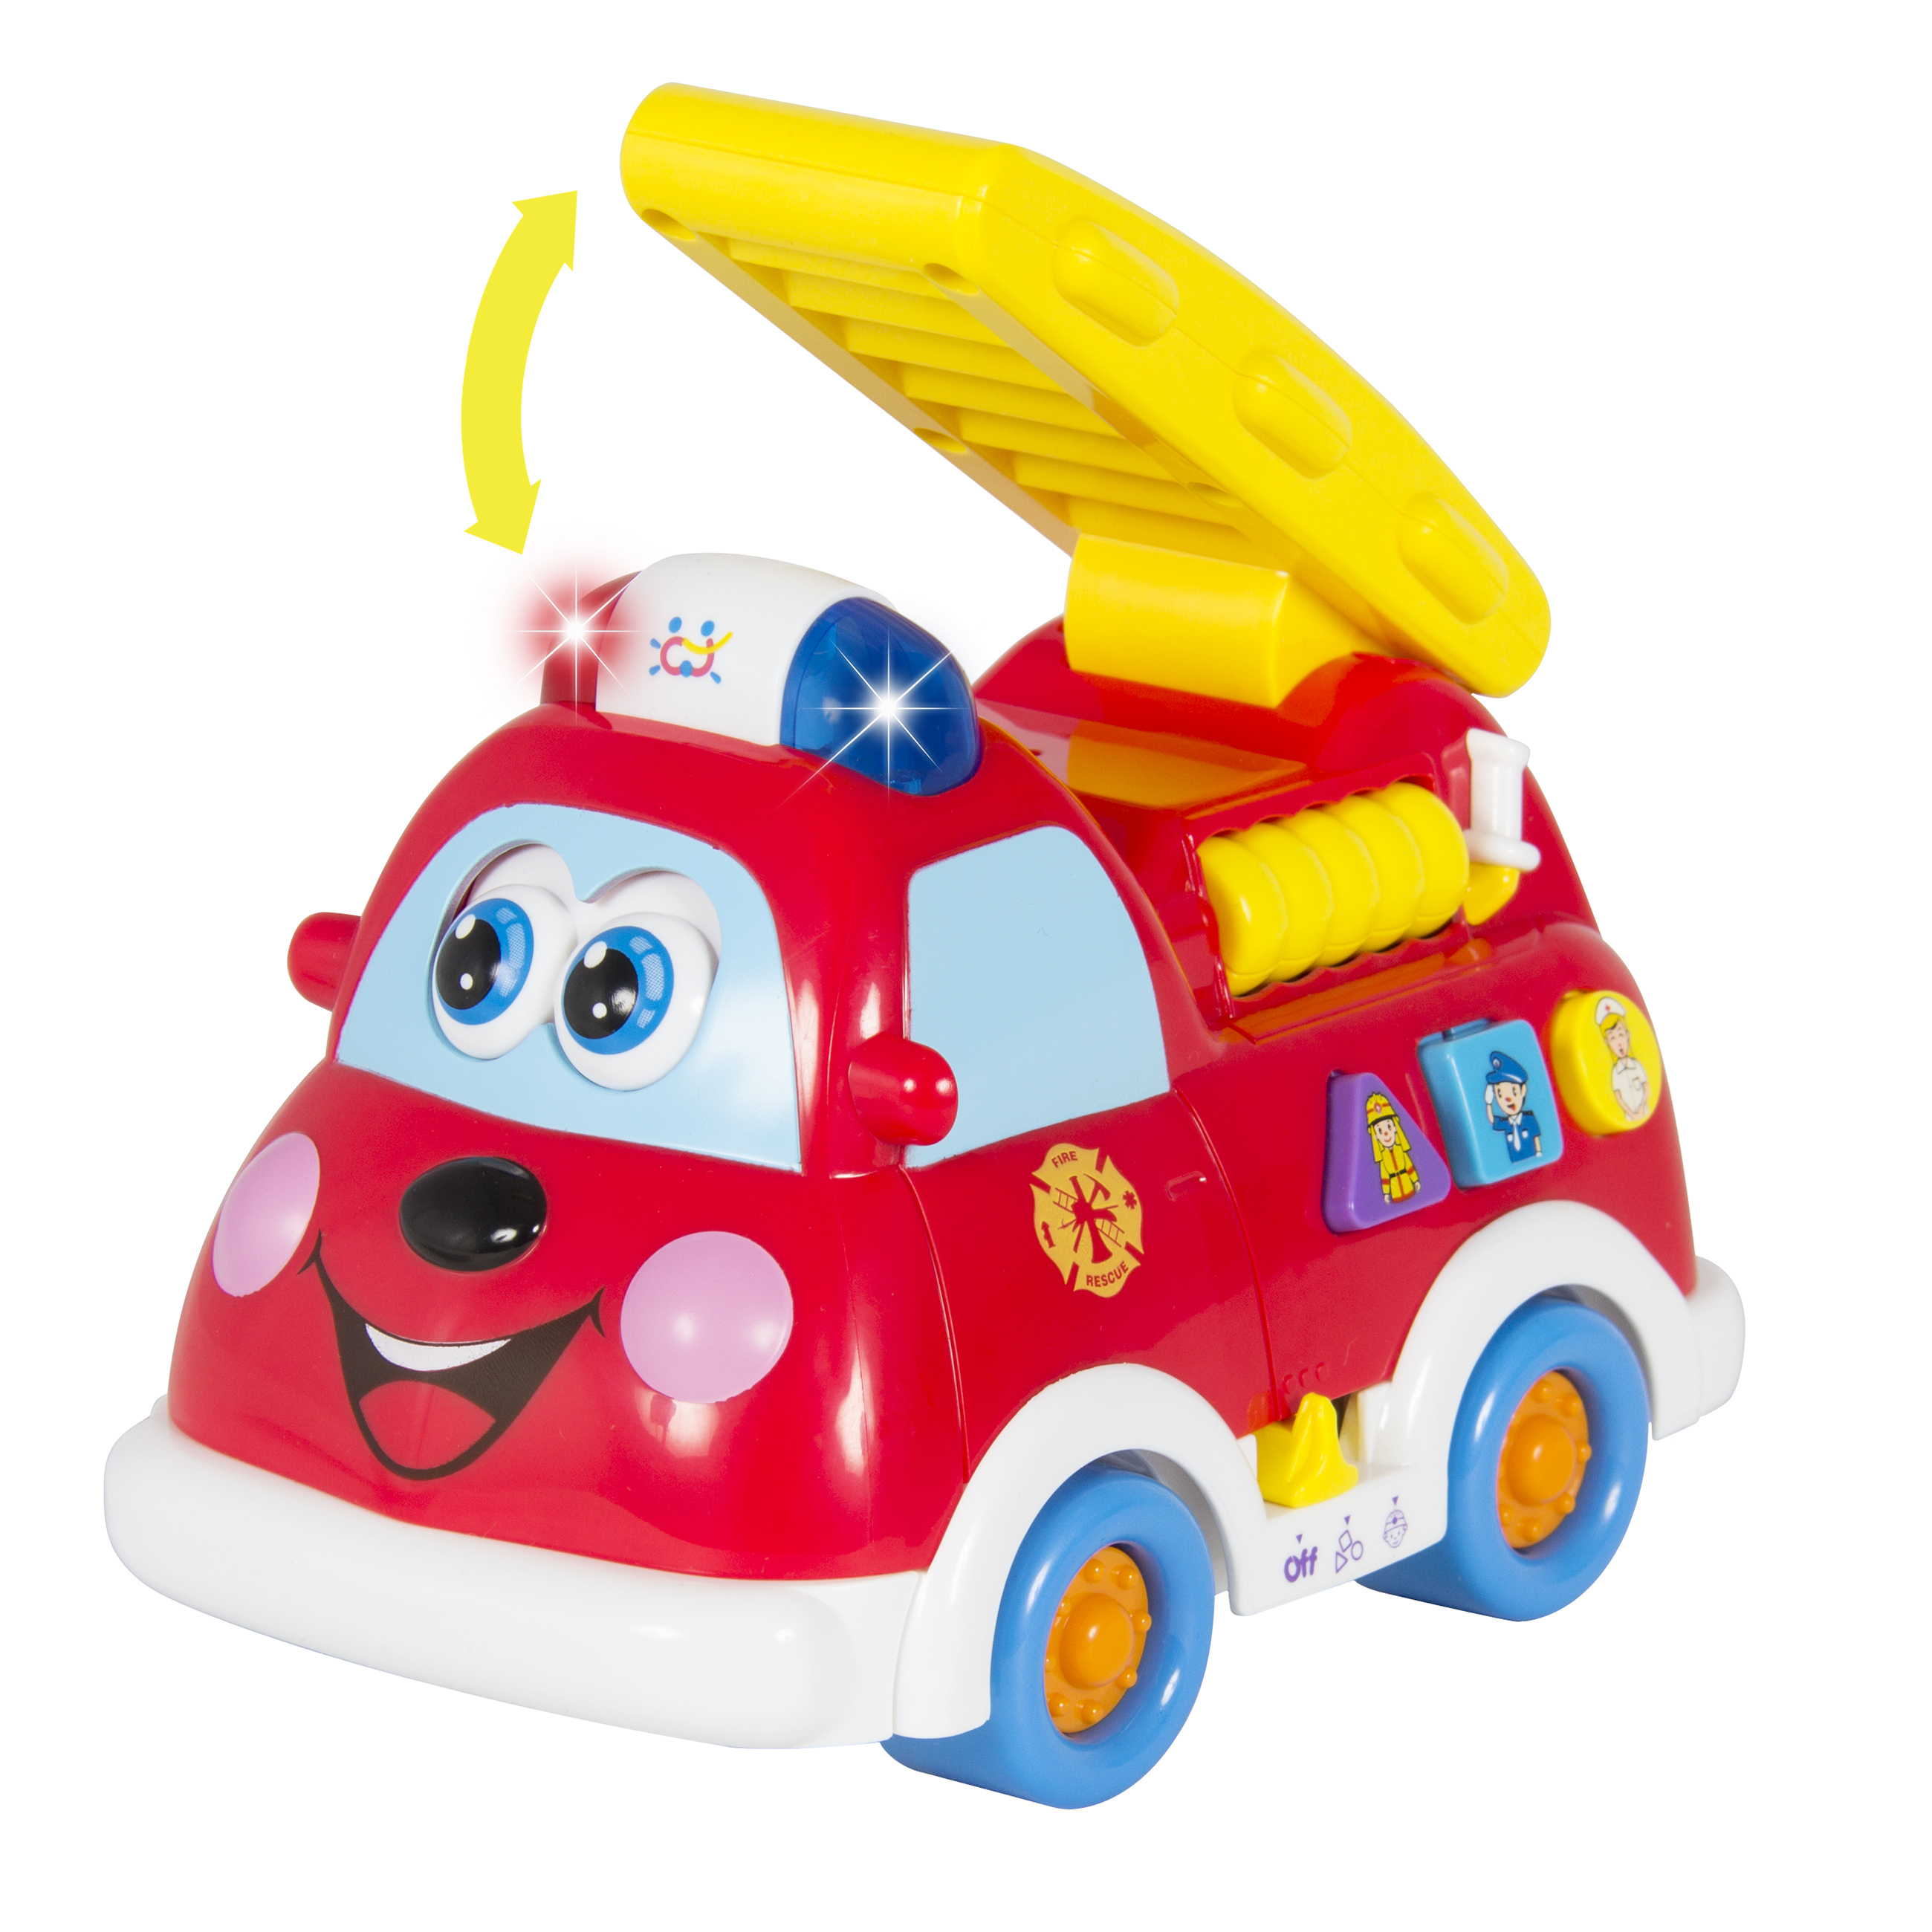 Best Choice Products Fire Truck Toy with Lights and Sirens, Bump'n'Go, Teaching (English and Spanish)